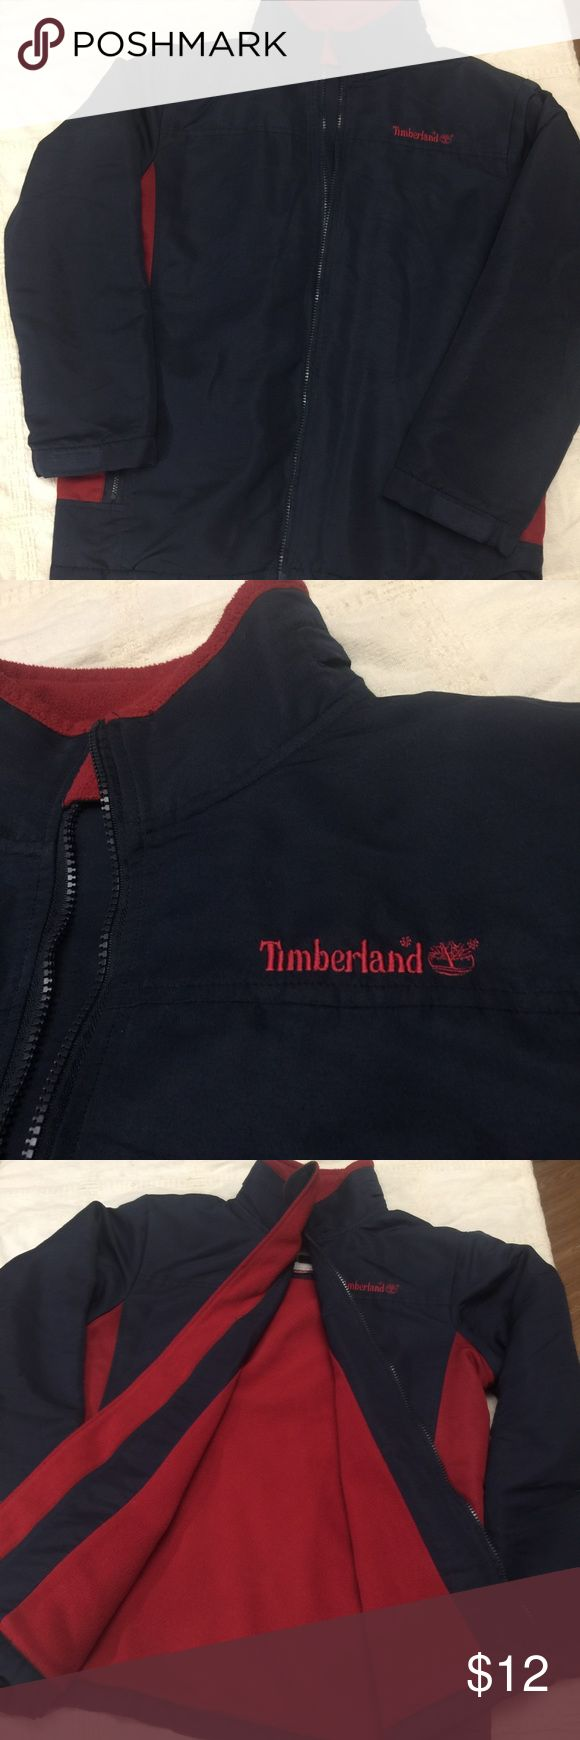 """Timberland Jacket Timberland Jacket.... size XL for teens or young adult. Zippered front closure, 2 side zippered pockets. Flannel lining  throughout Jacket and hands. Label has """"permanent markings"""" to hide my cousins name. Unisex, warm, no tear, or odor! Nice! EUC!! Timberland Jackets & Coats Utility Jackets"""